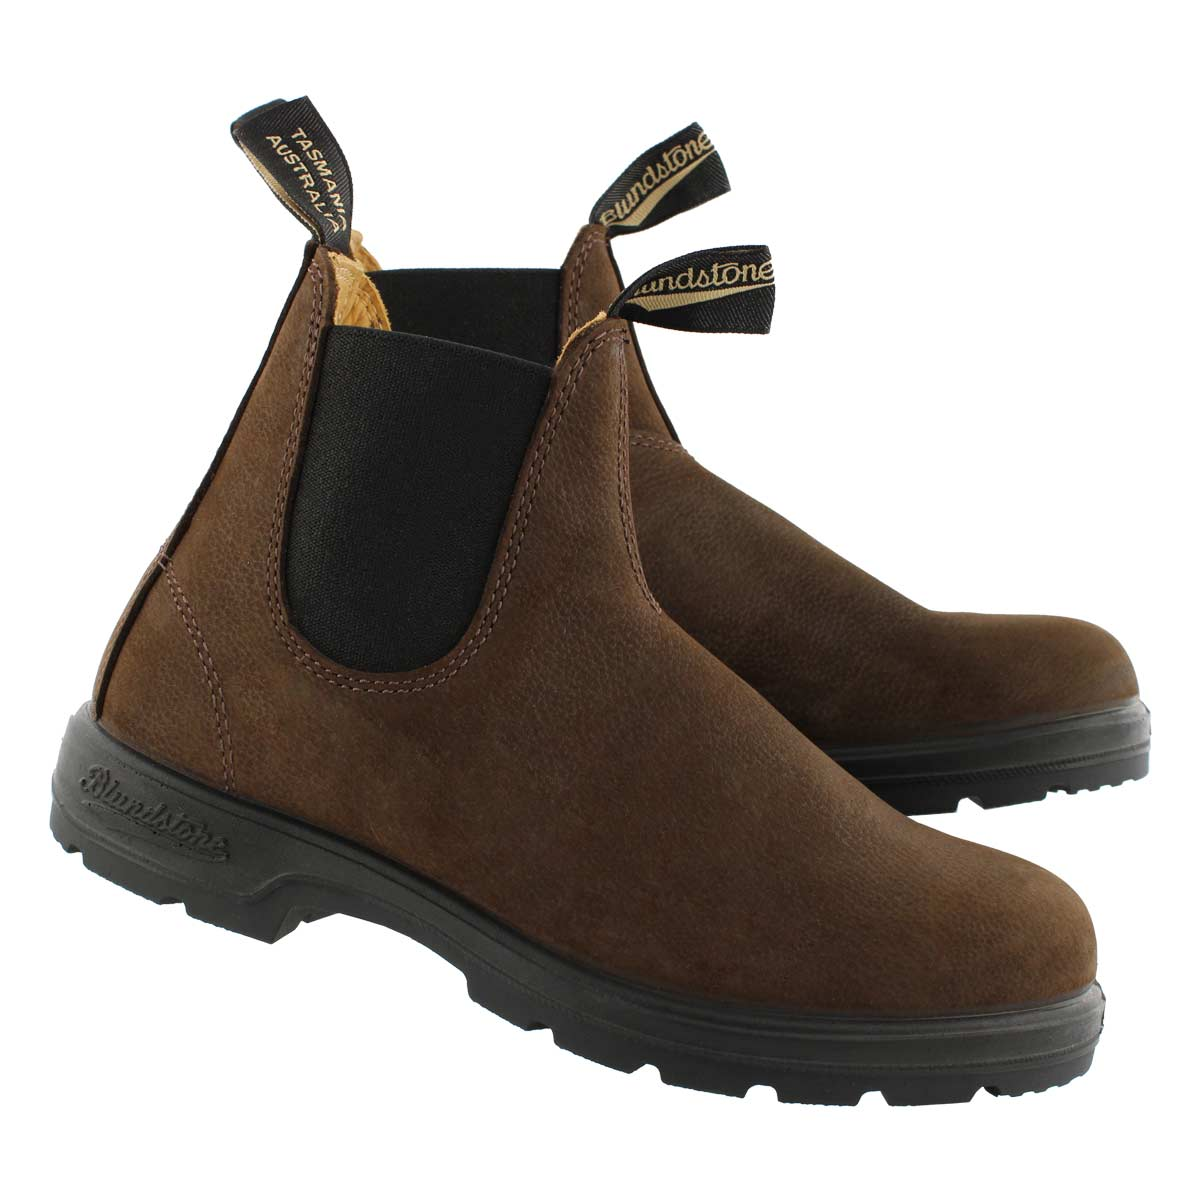 Unisex Lthr Lined brown twin gore boot